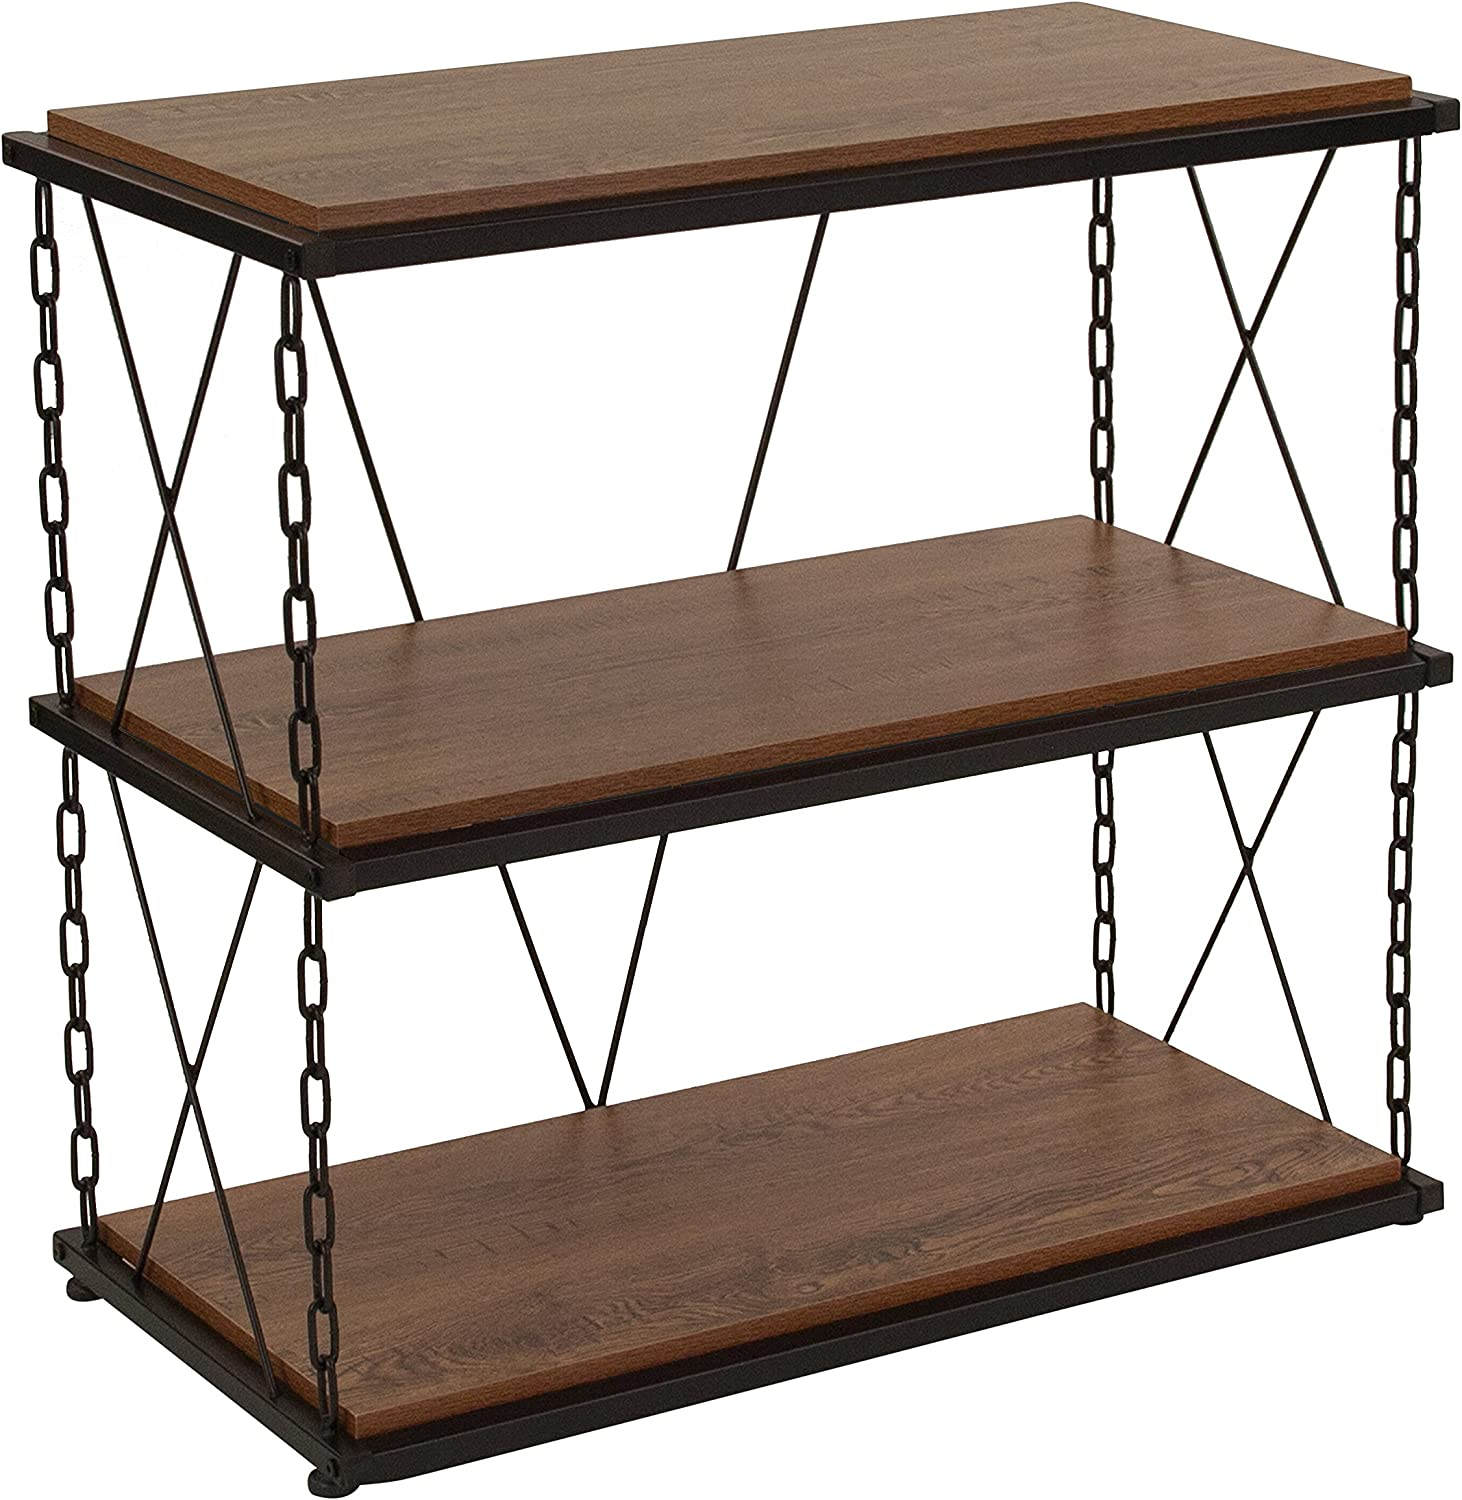 Flash Furniture Vernon Hills Collection Antique Wood Grain Finish Two Shelf Bookshelf with Chain Accent Metal Frame